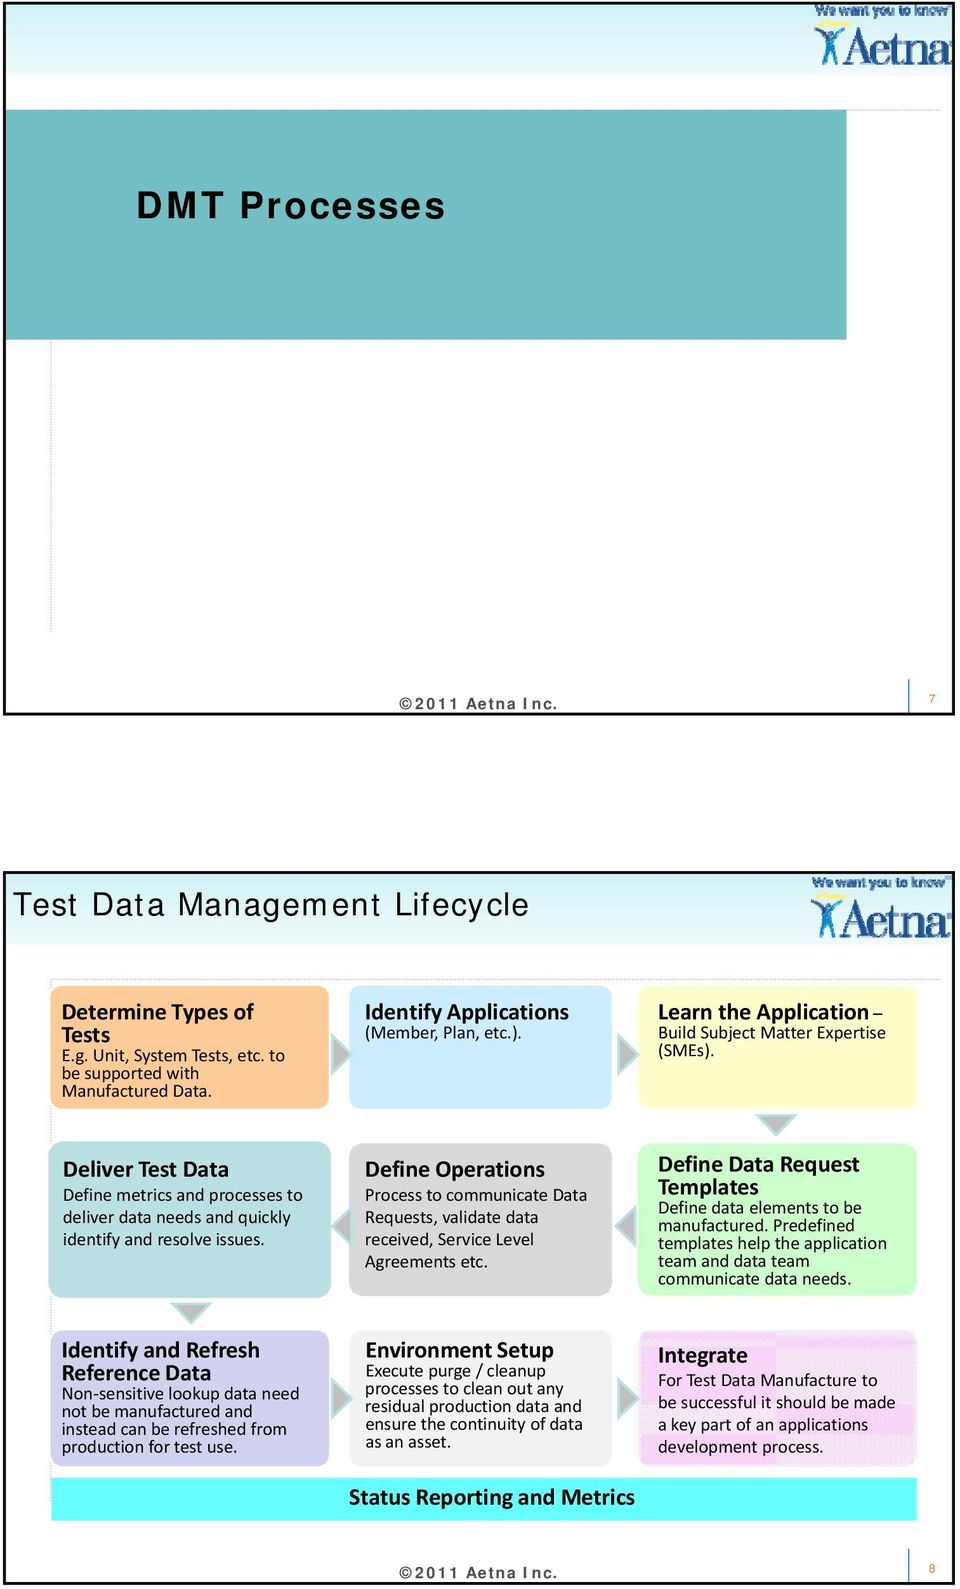 service level agreement on data accessbility pdf